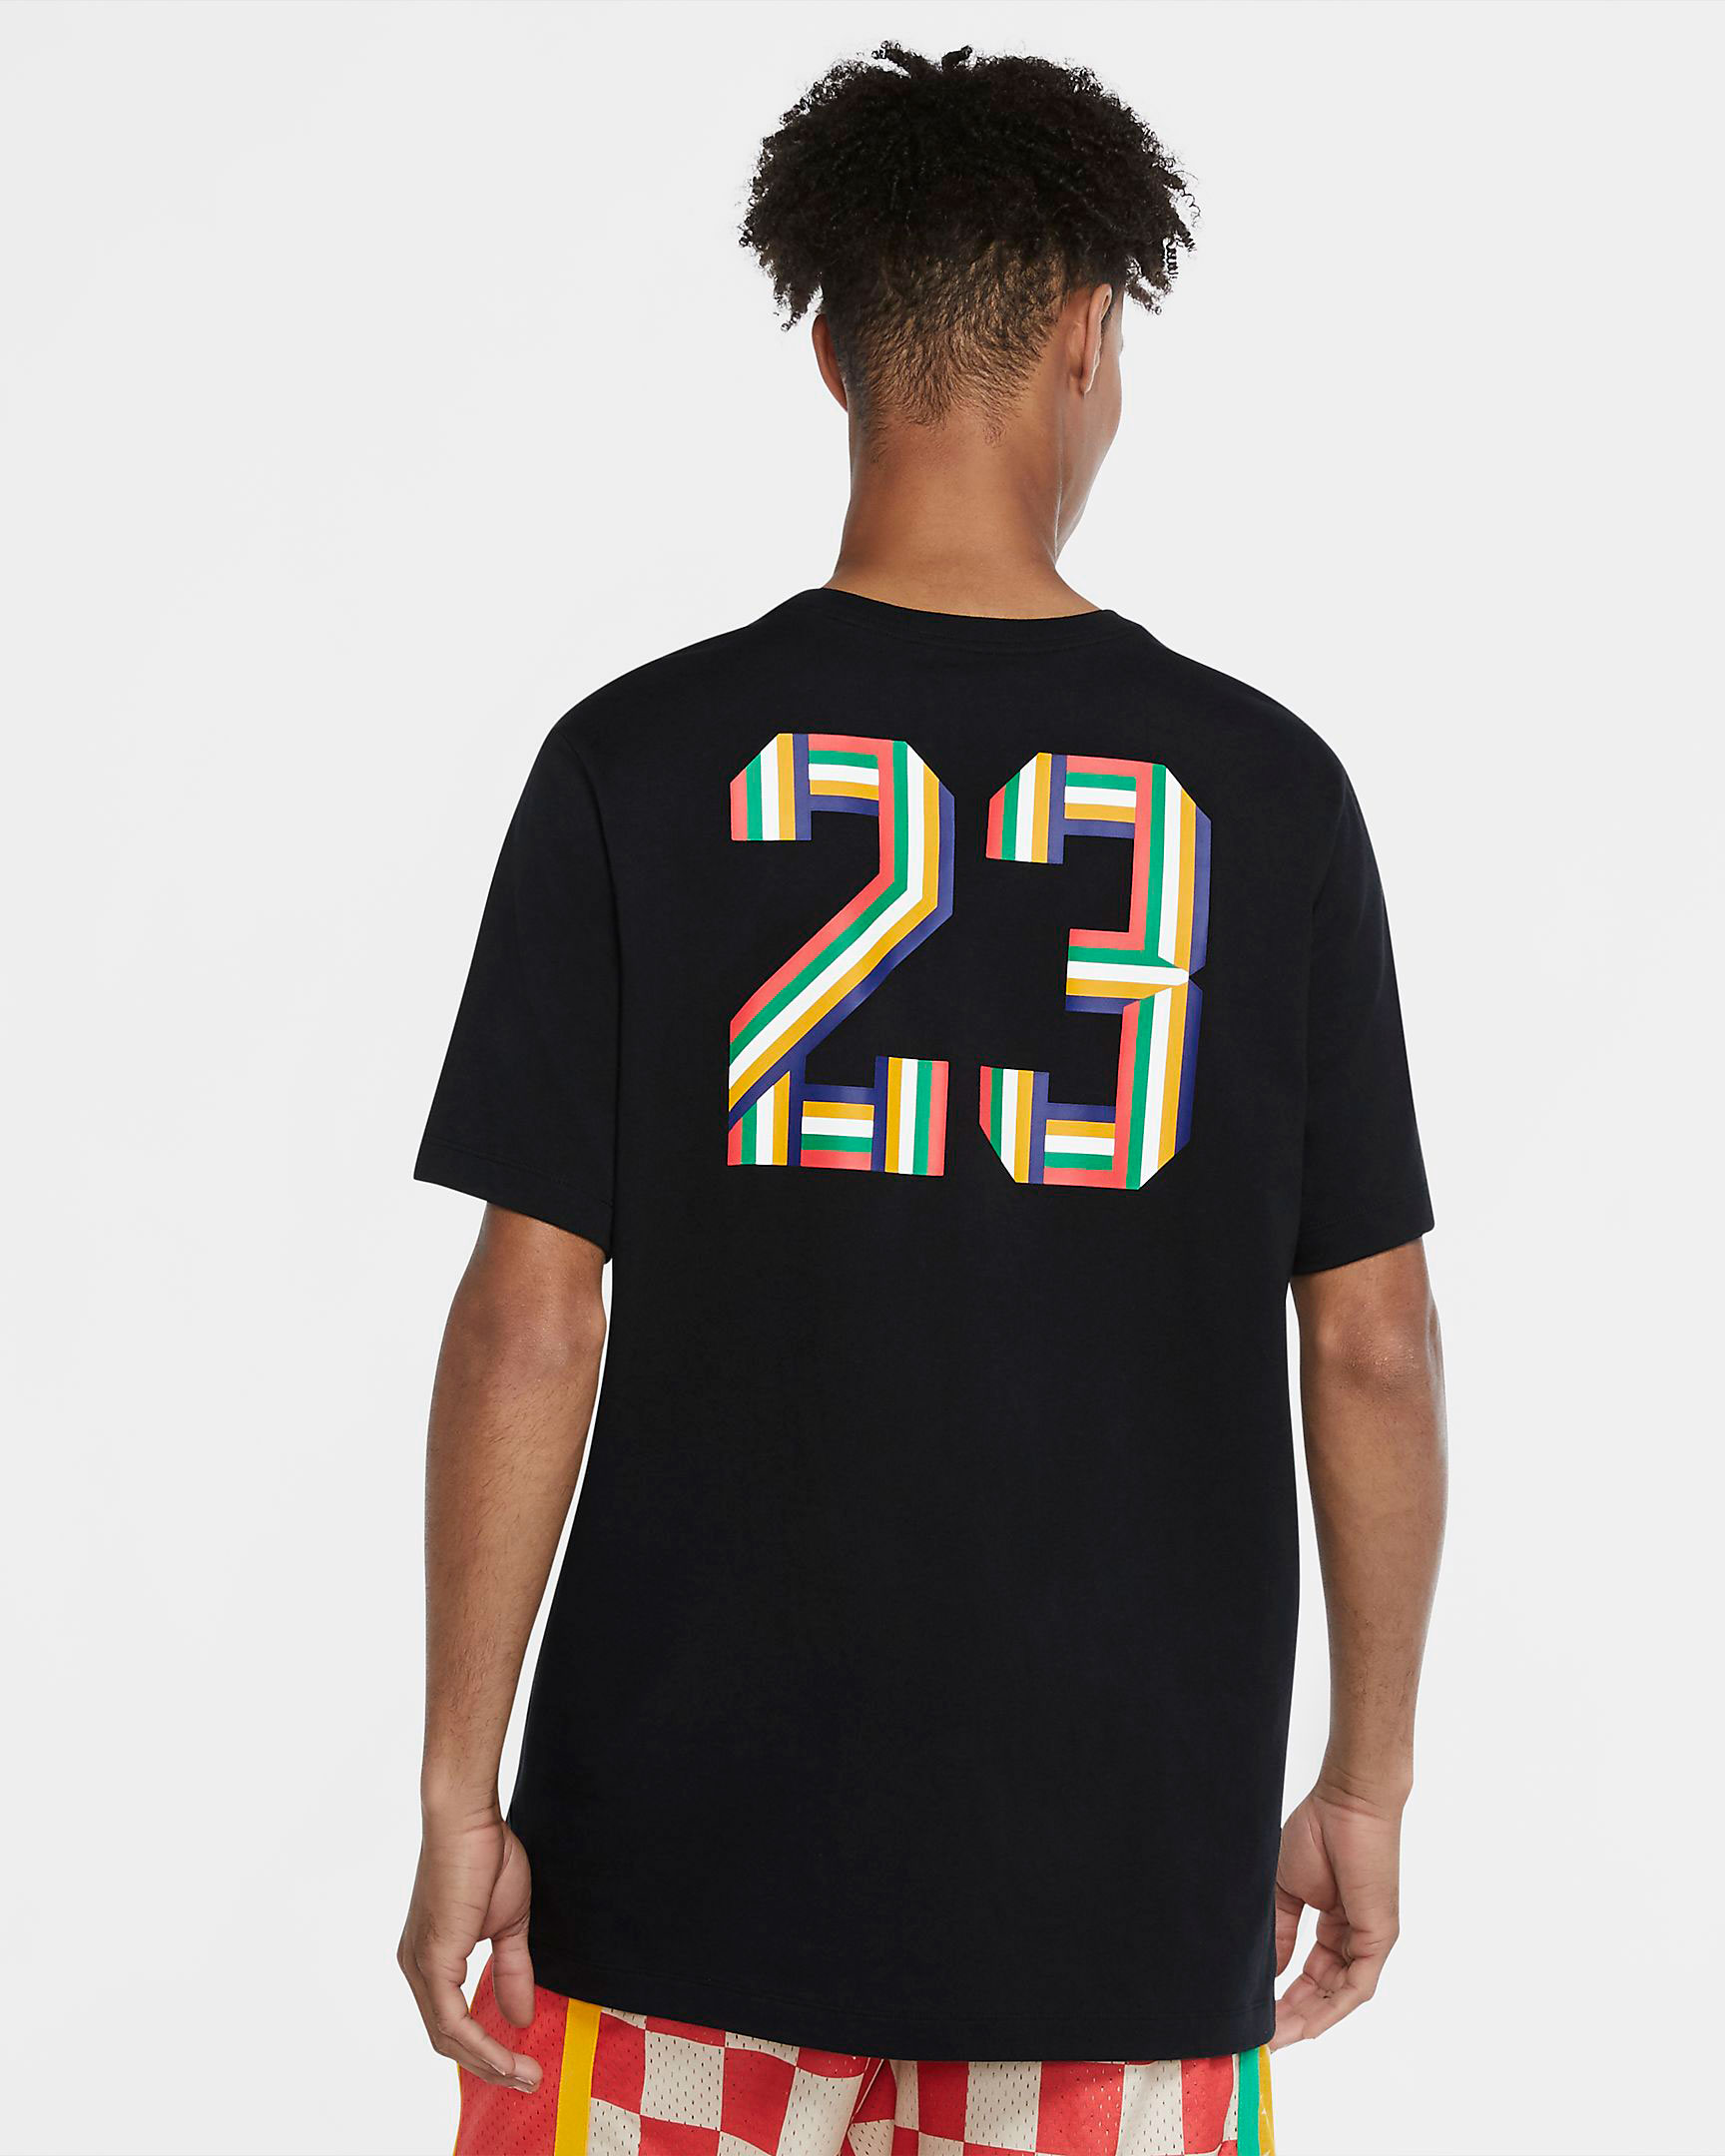 air-jordan-34-noah-zion-shirt-match-2